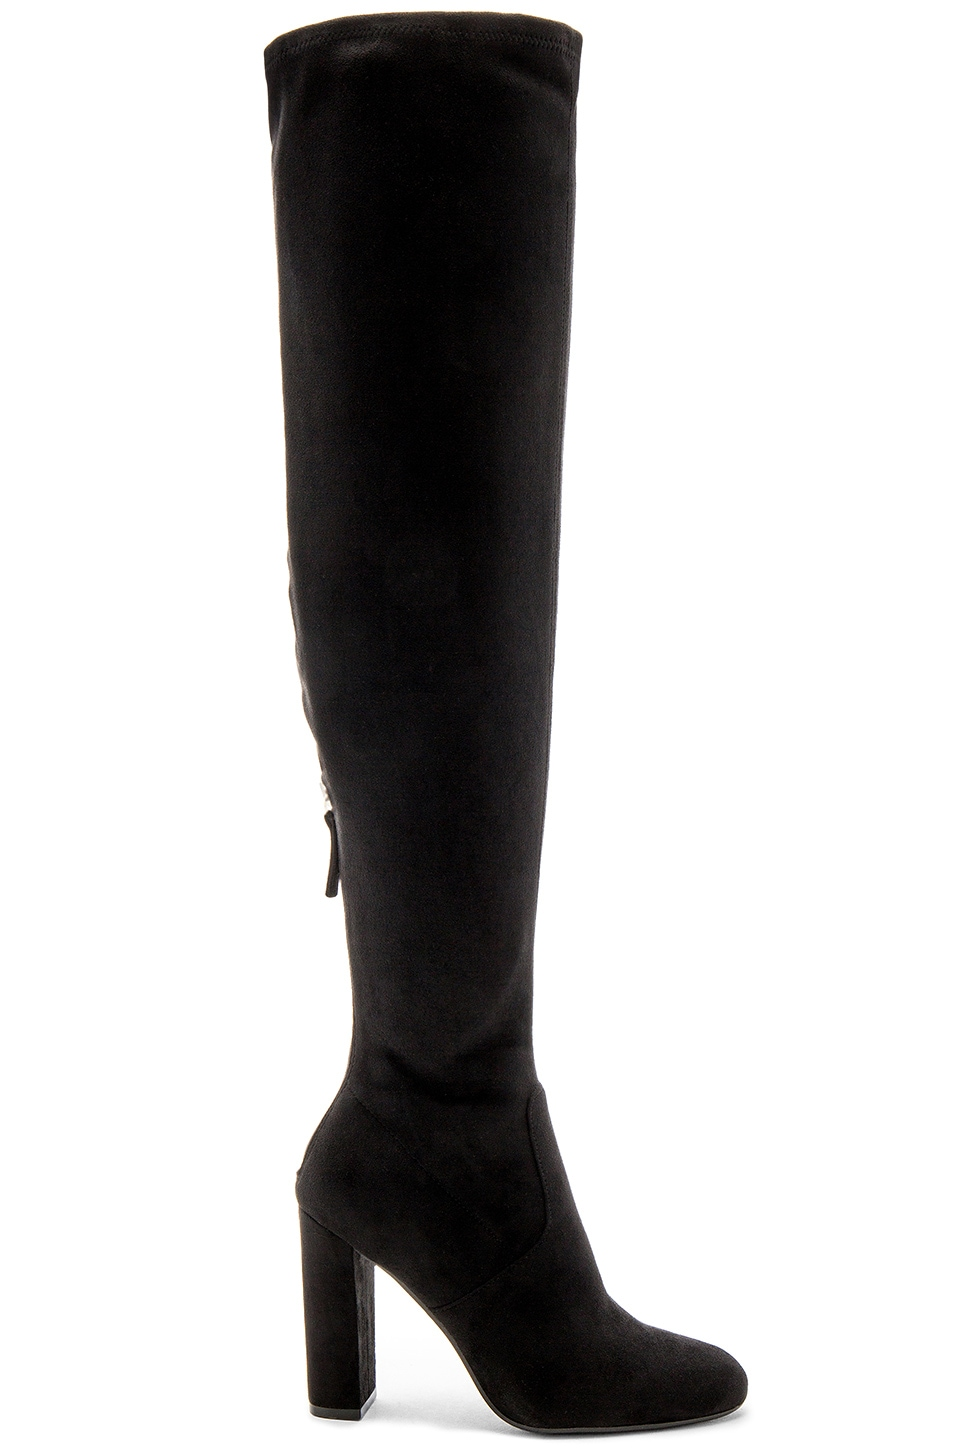 Steve Madden Emotionz Boot in Black Suede